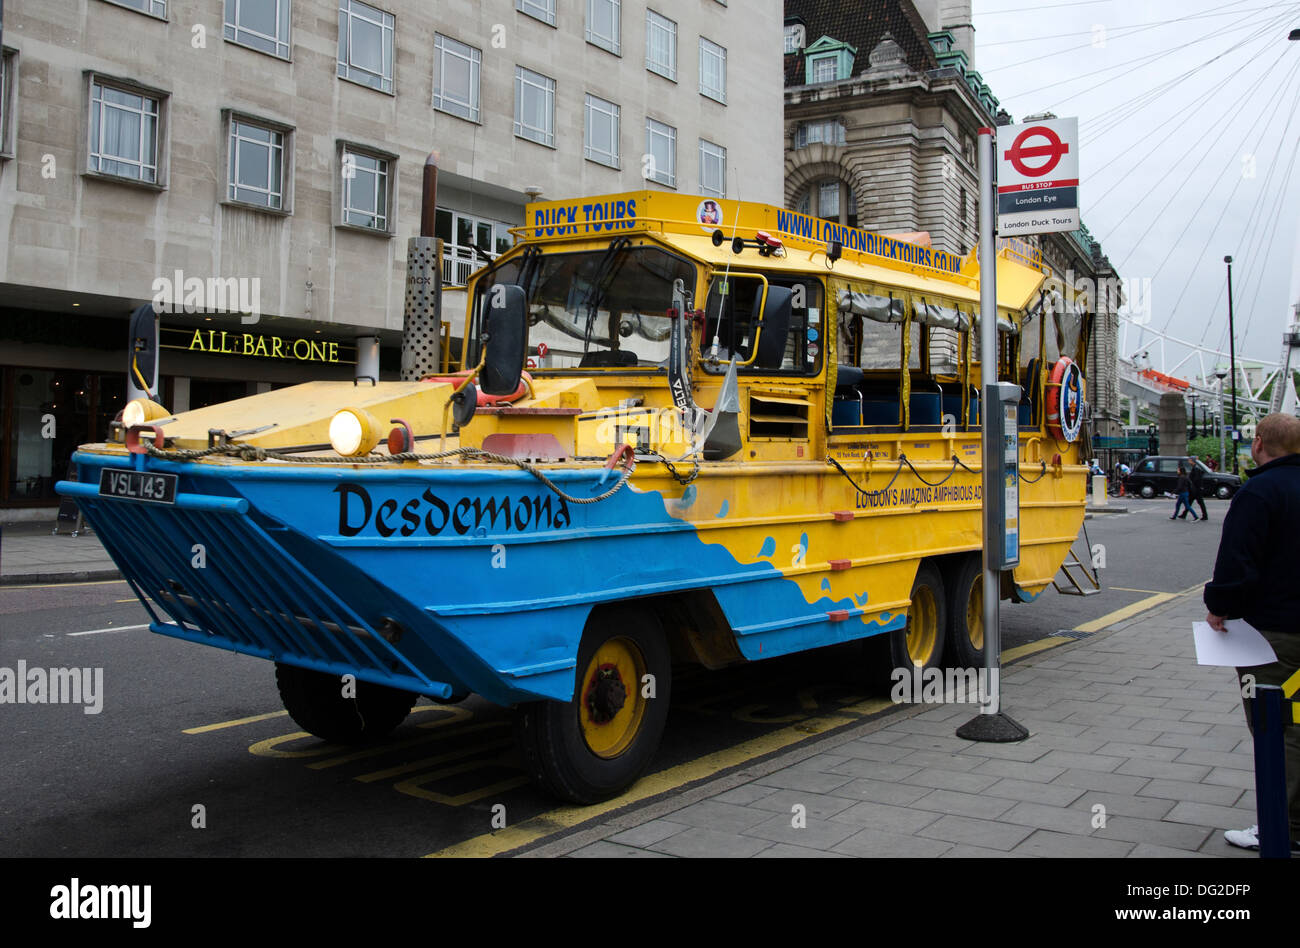 london duck tours amphibious vehicle desdemona parked up ready to take on tourists - Stock Image